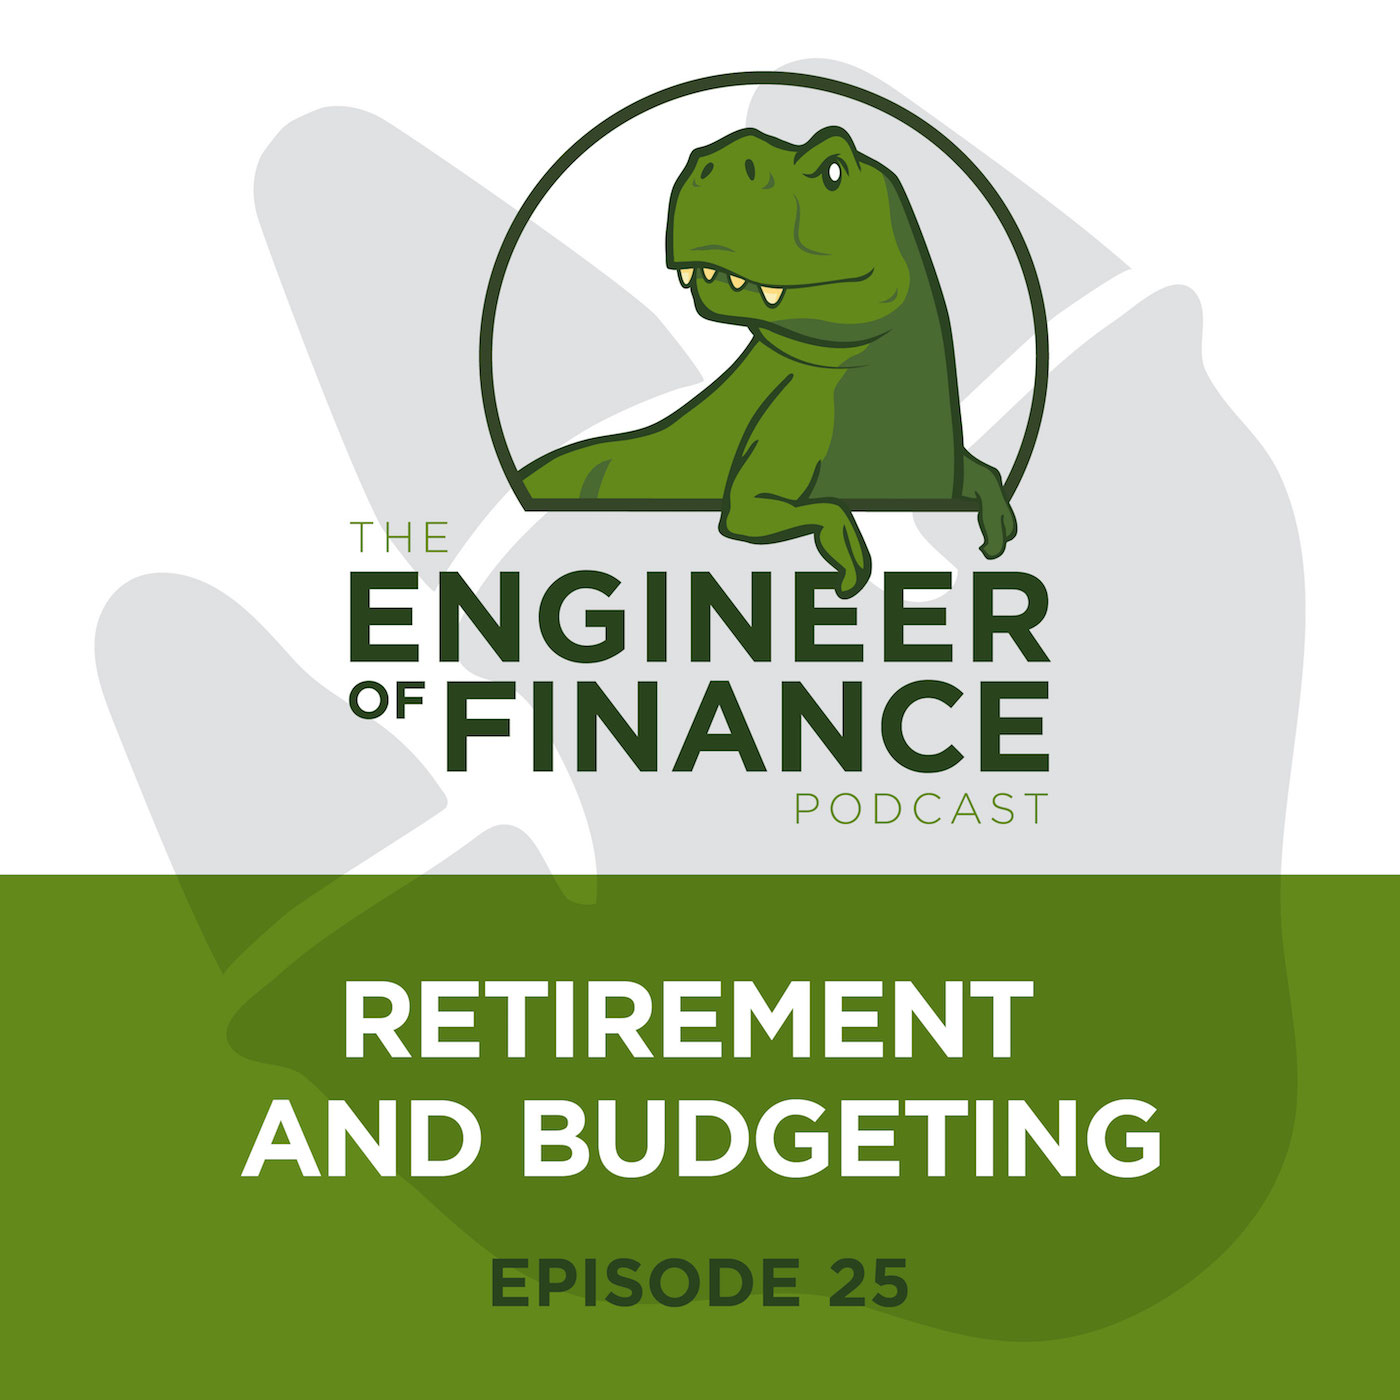 Retirement And Budgeting – Episode 25